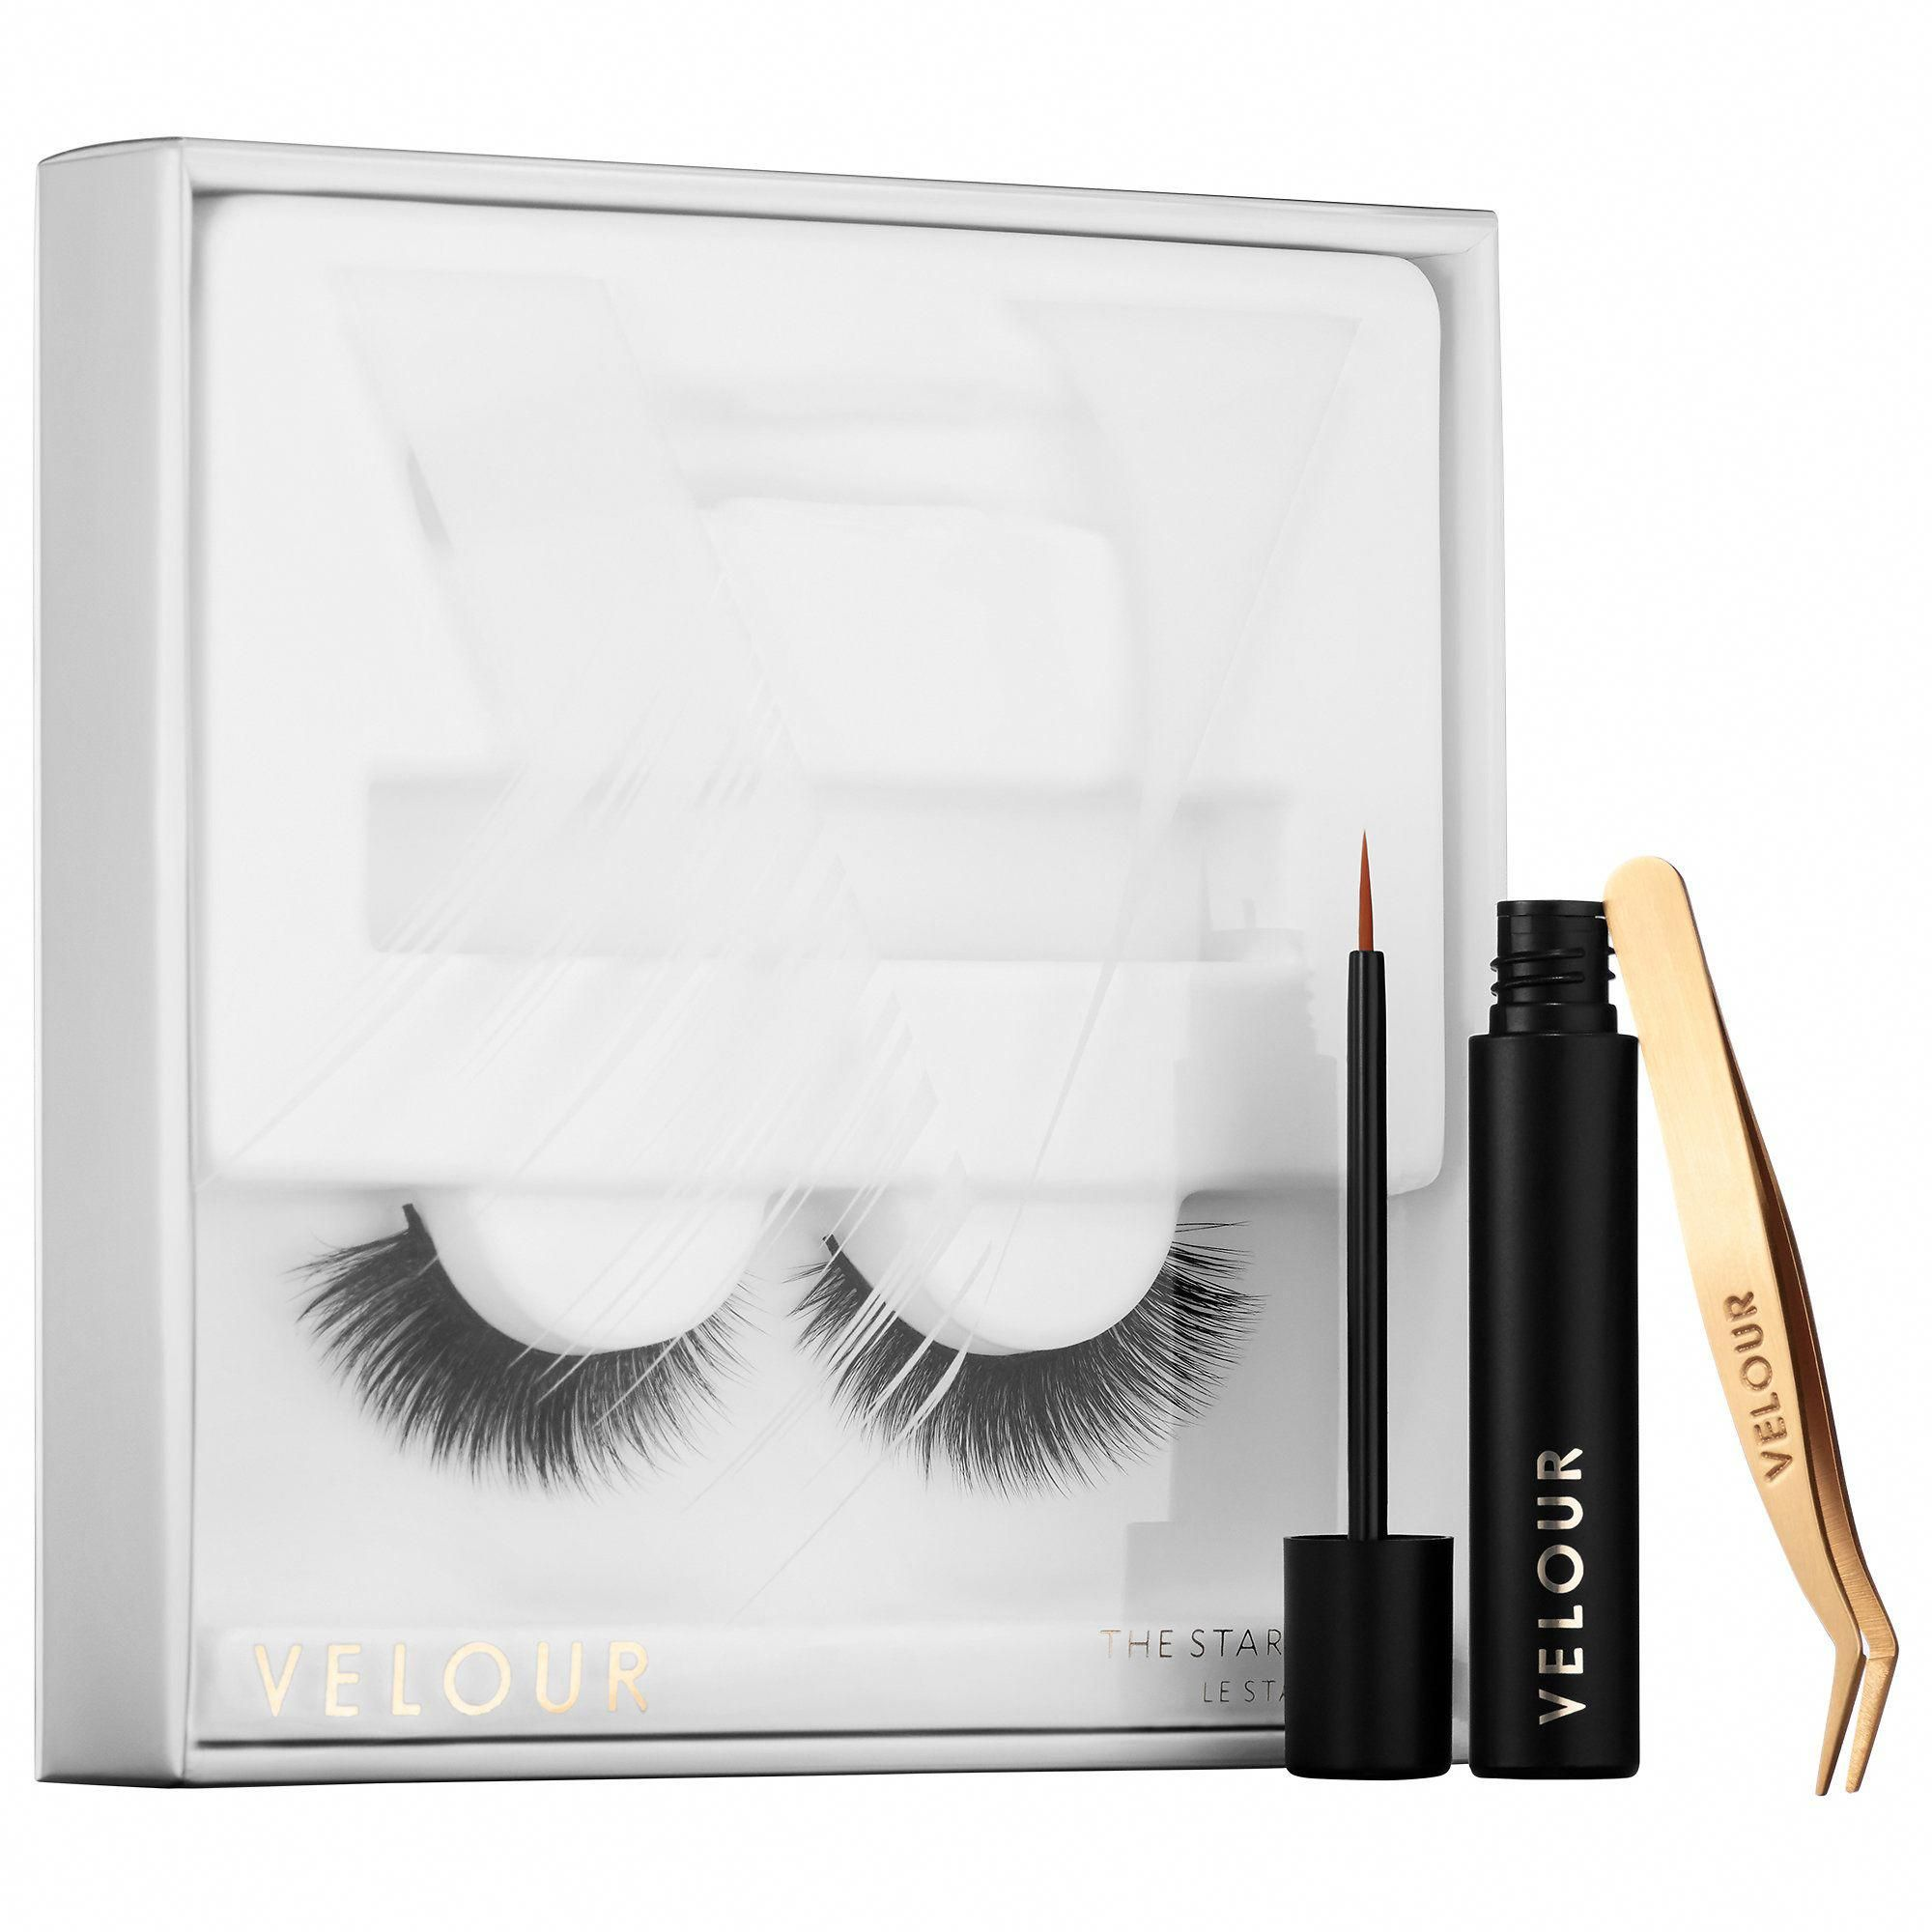 0da7a36a2d2 The Starter Lash Kit - Velour Lashes | Sephora | Makeup and ...